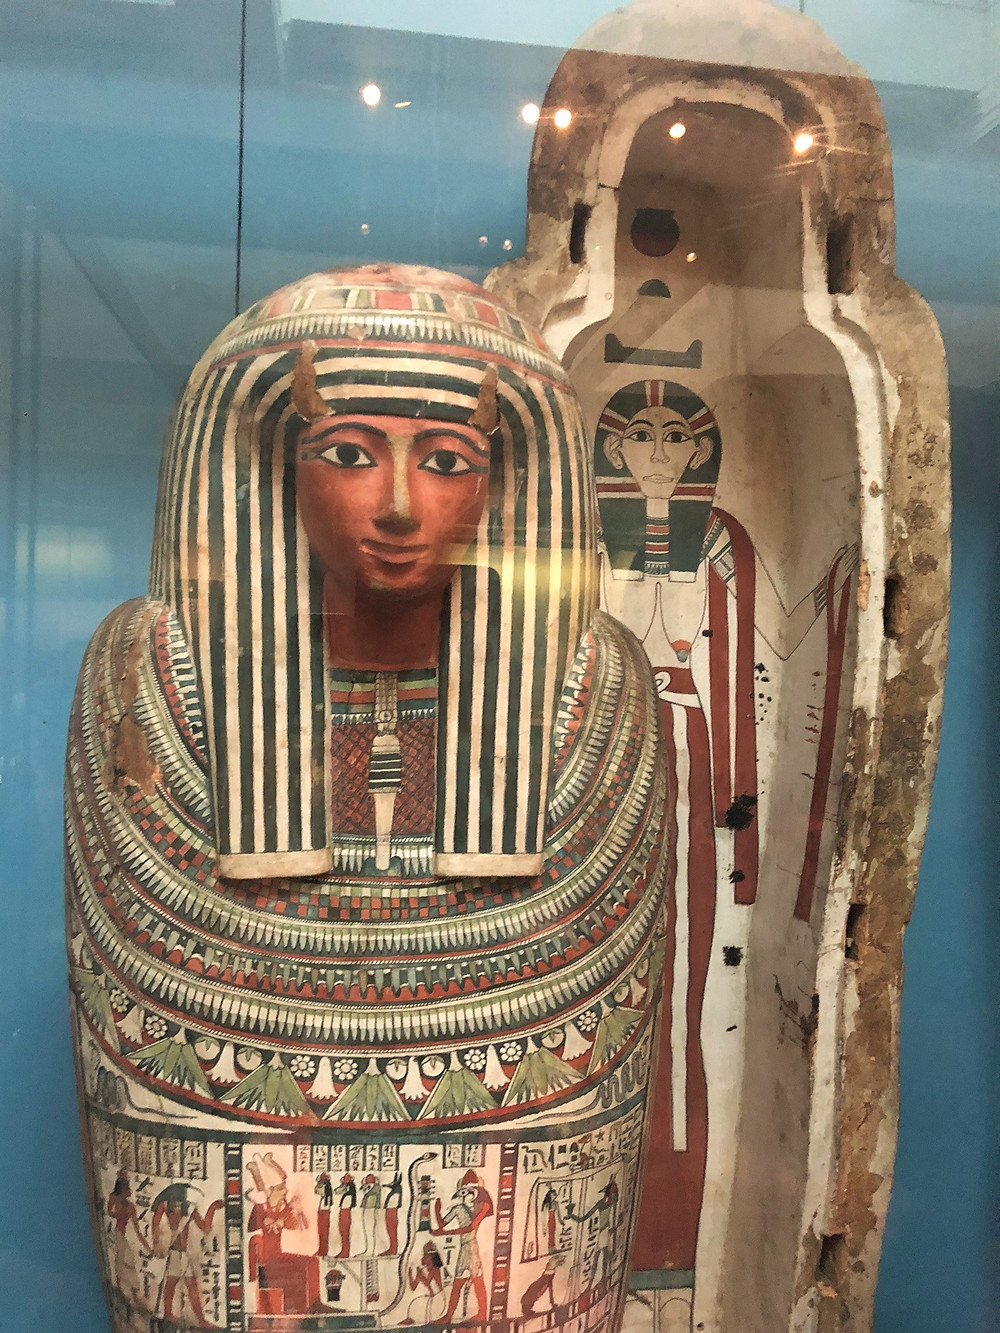 Egyptian mummy and casket on display at The British Museum